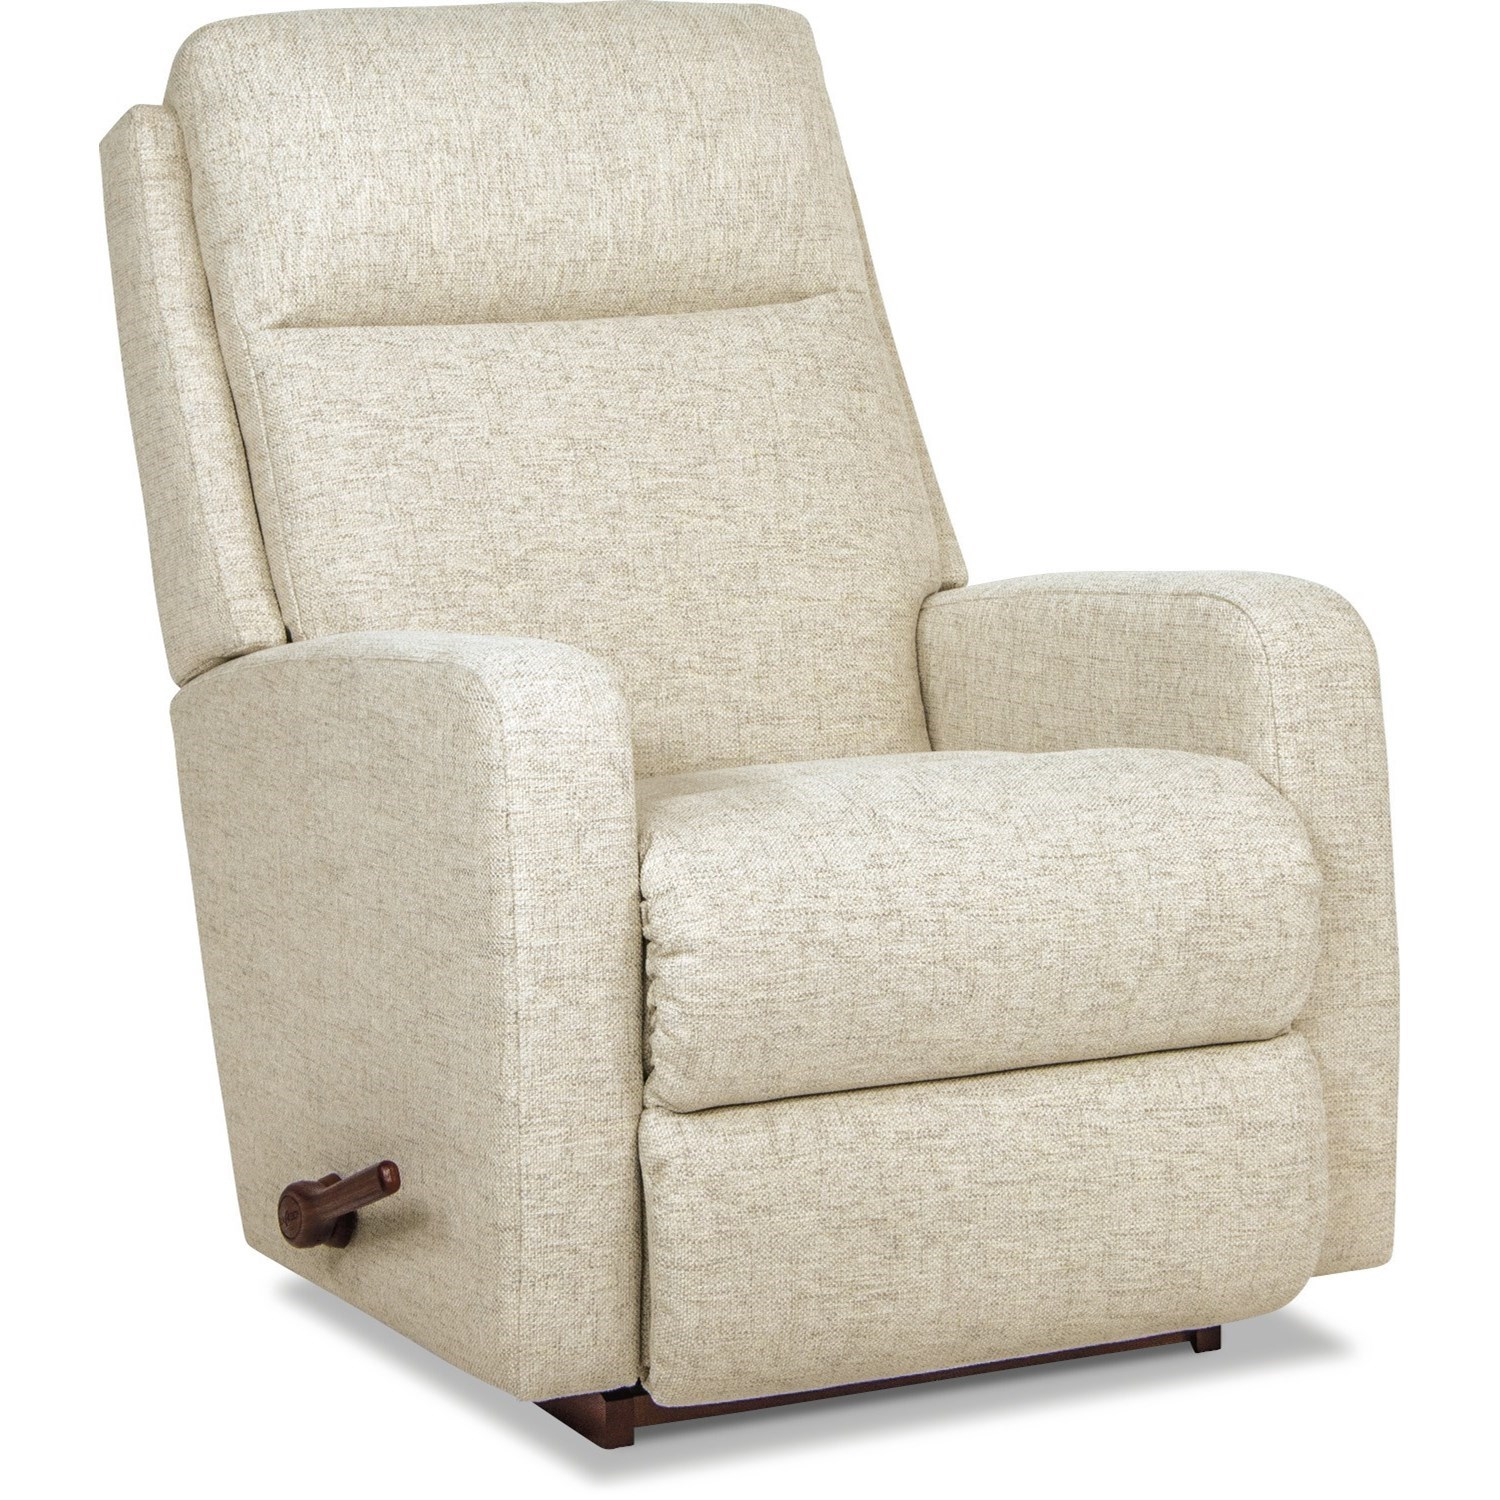 Finley Wall Saver Recliner by La-Z-Boy at Home Furnishings Direct